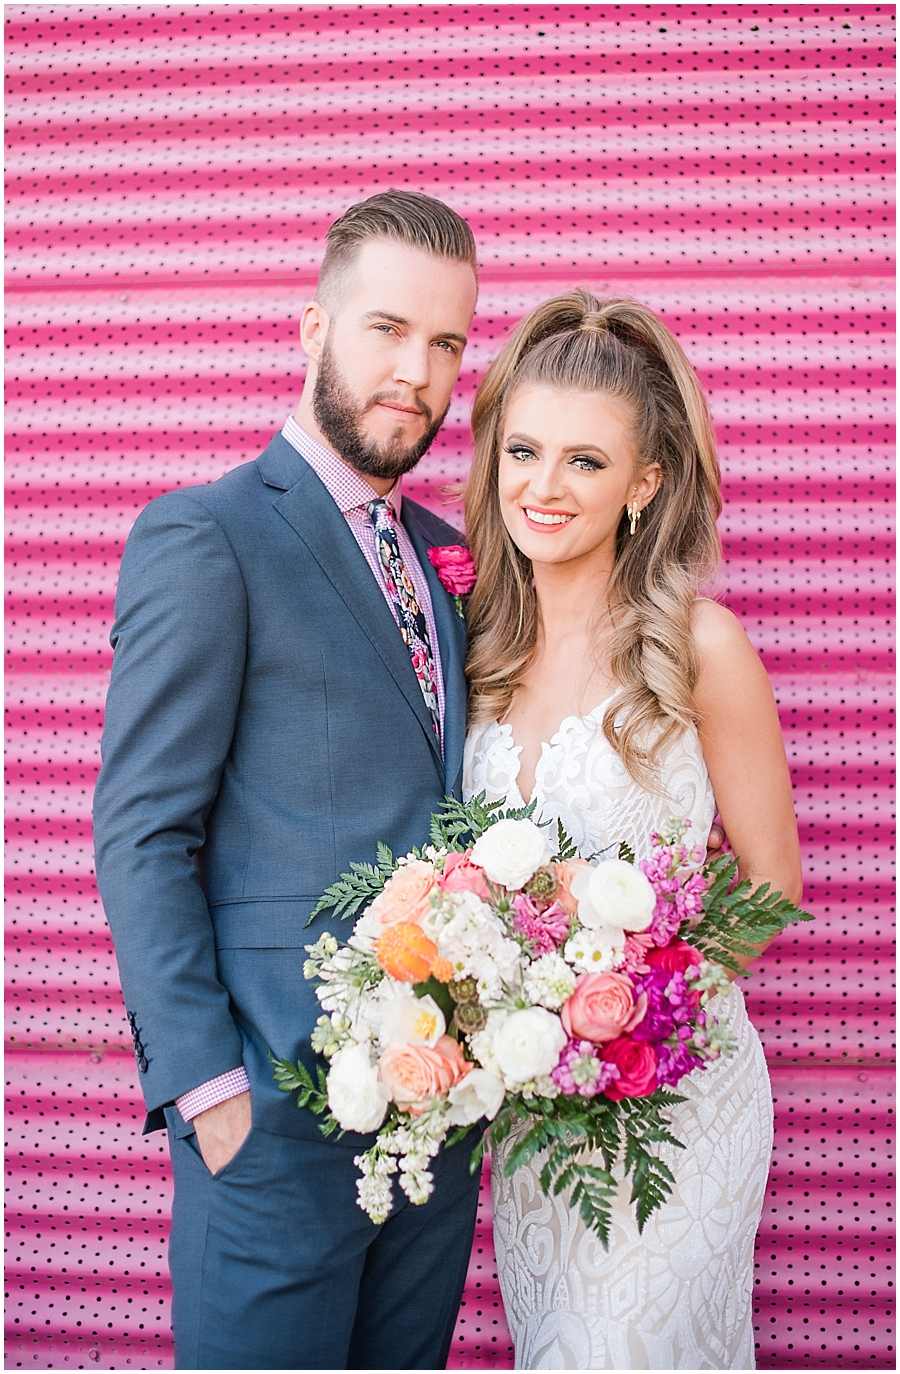 Gorgeous bride Natalie Meyer wearing a dress by Bella Lily Bridal, with her groom Zach Meyer at The Saguaro Scottsdale. Hair and makeup was done by Makiaj Beauty. Grooms tux was provided by Magro Clothing. Photos by Jade Min Photography.